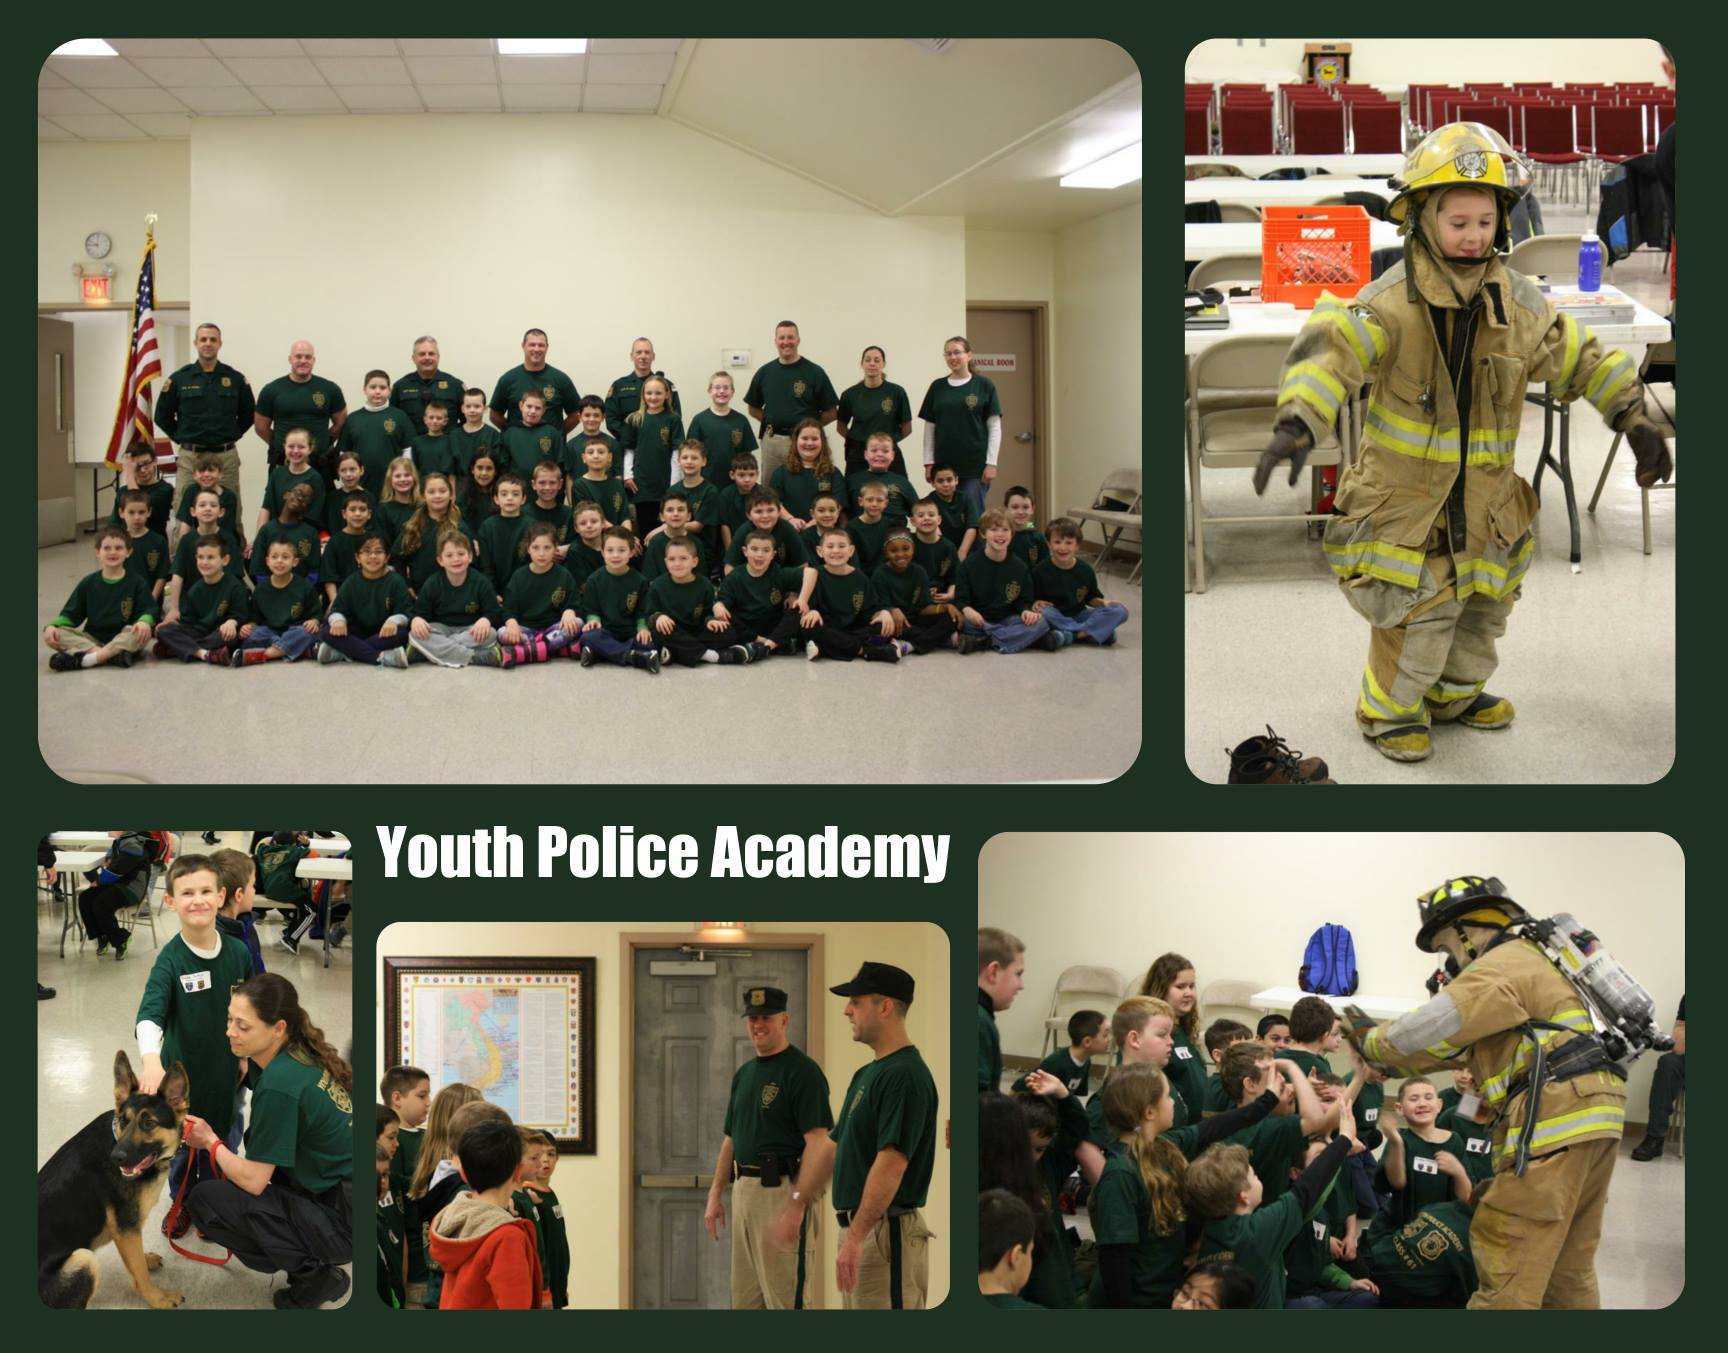 Youth Police Academy.jpg